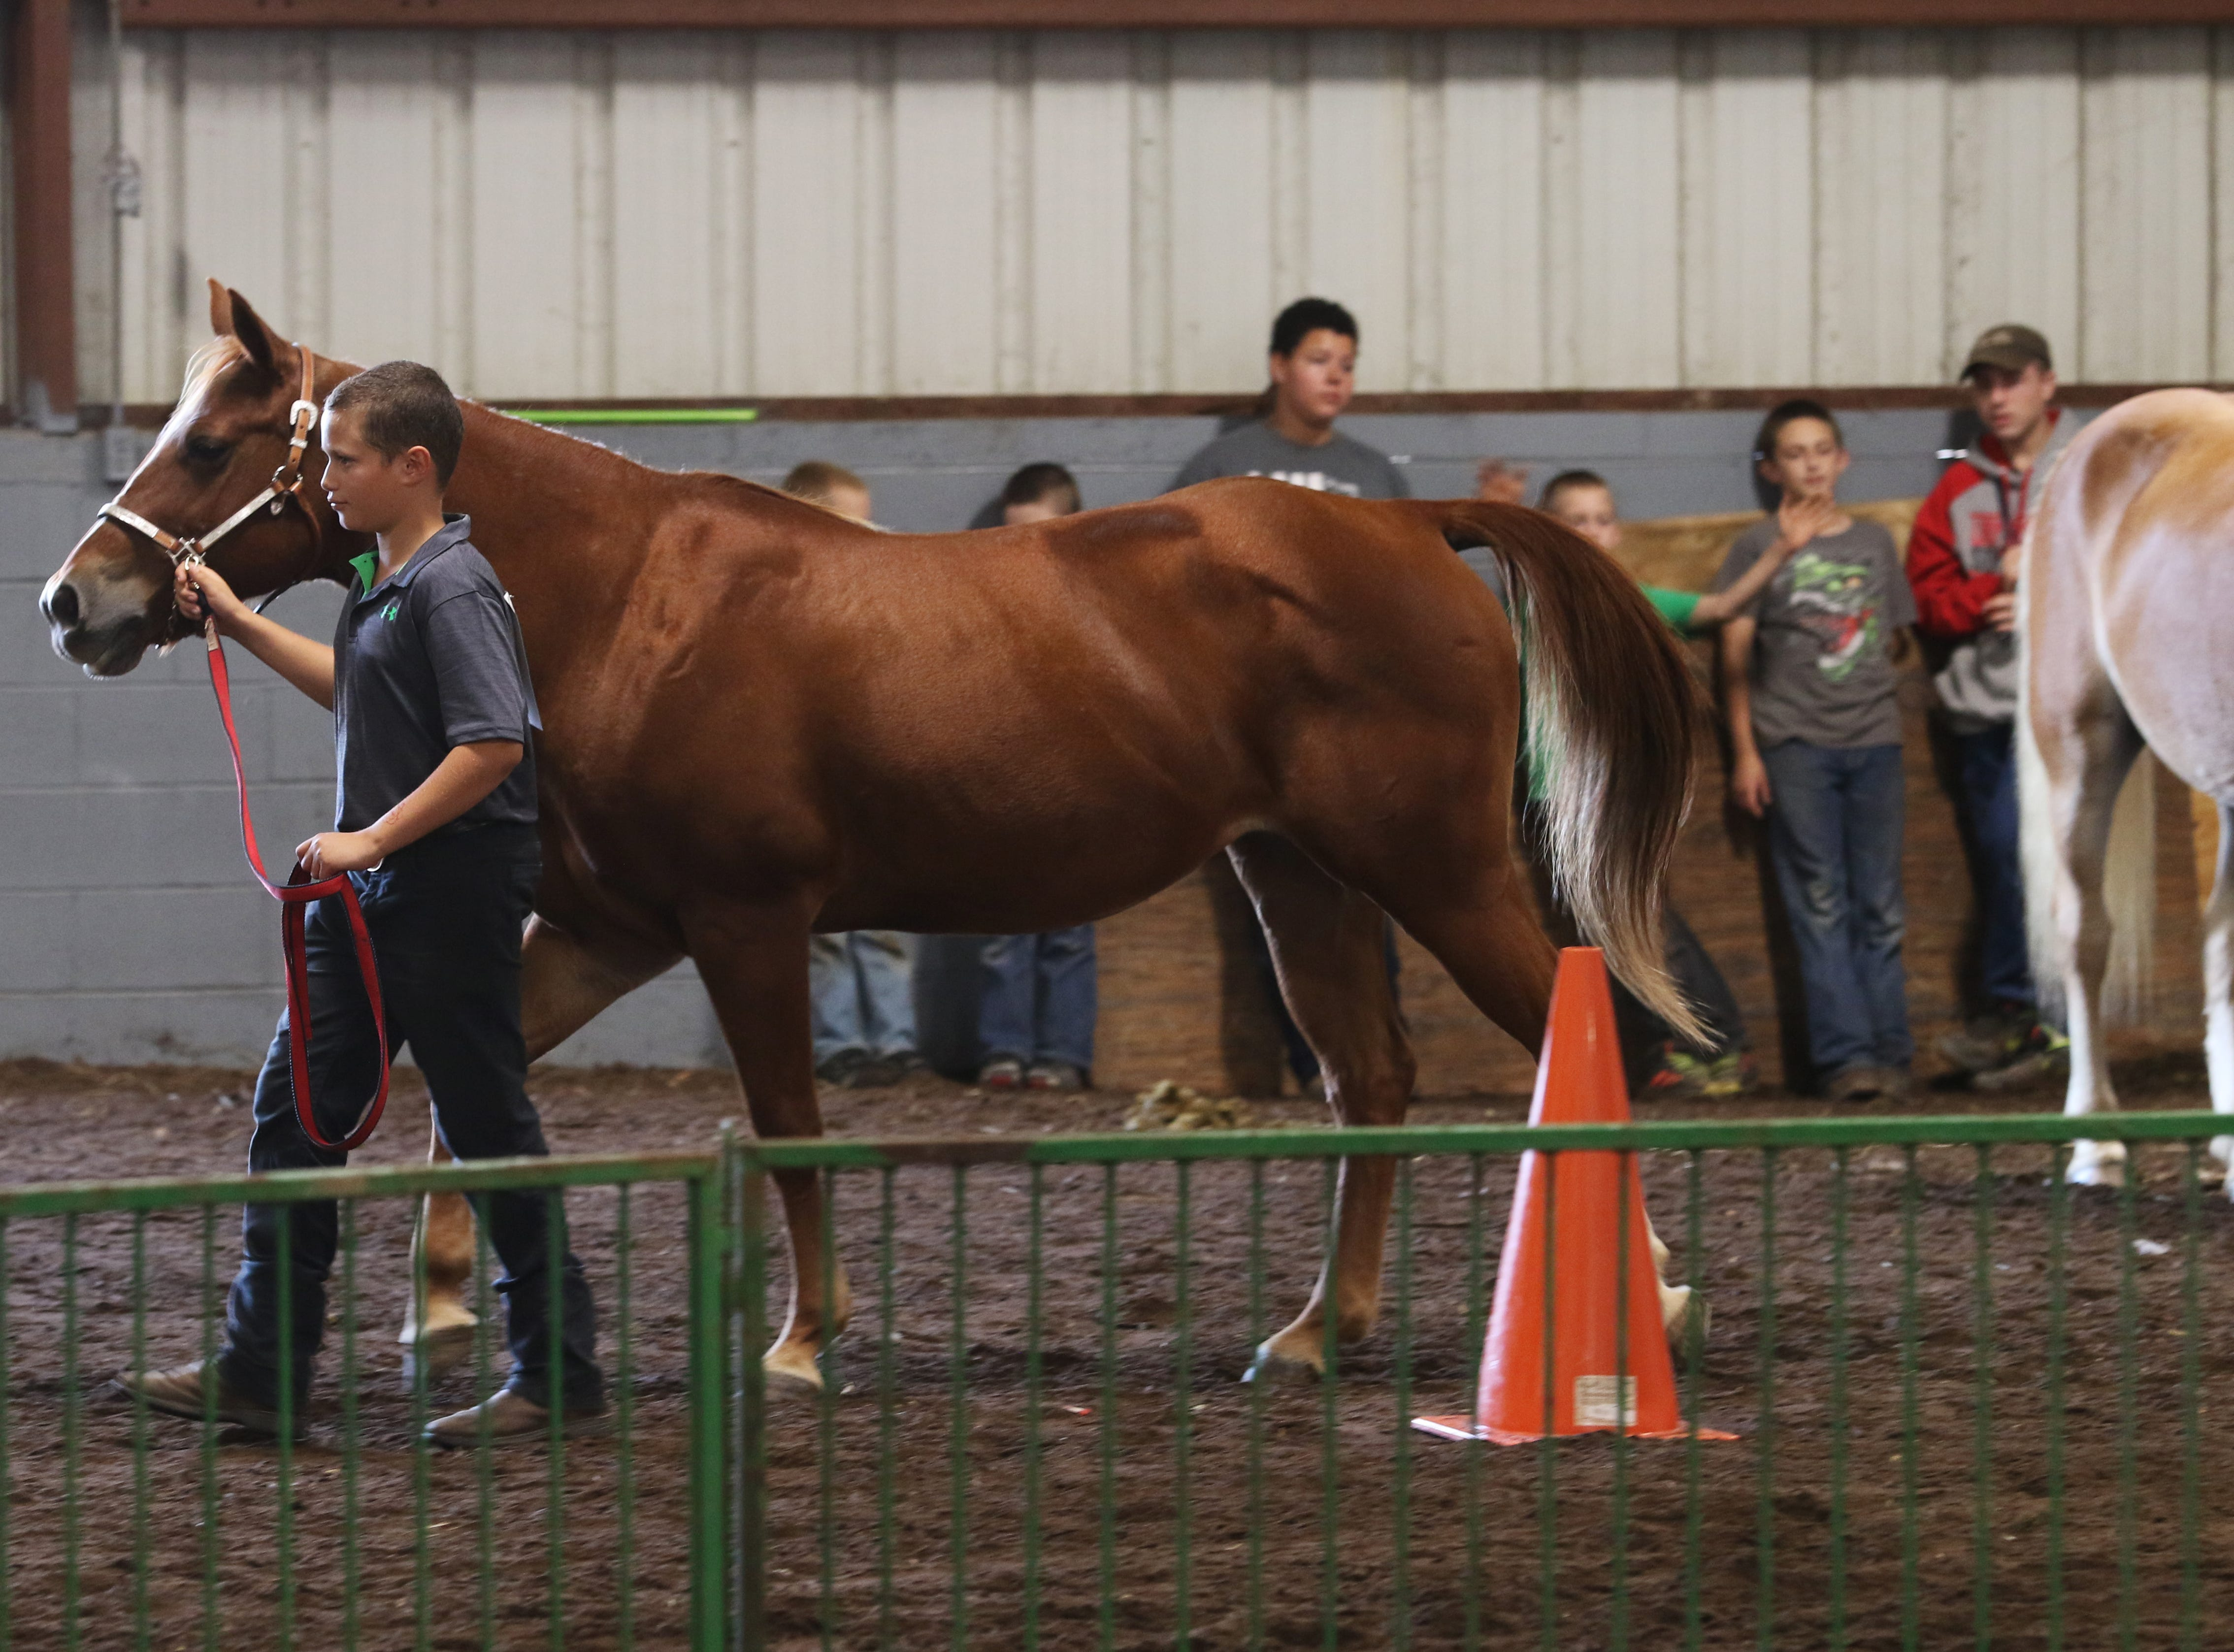 Johnathan Woodward shows a horse during the Showman of Showmen at the Coshocton County Fair on Wednesday.